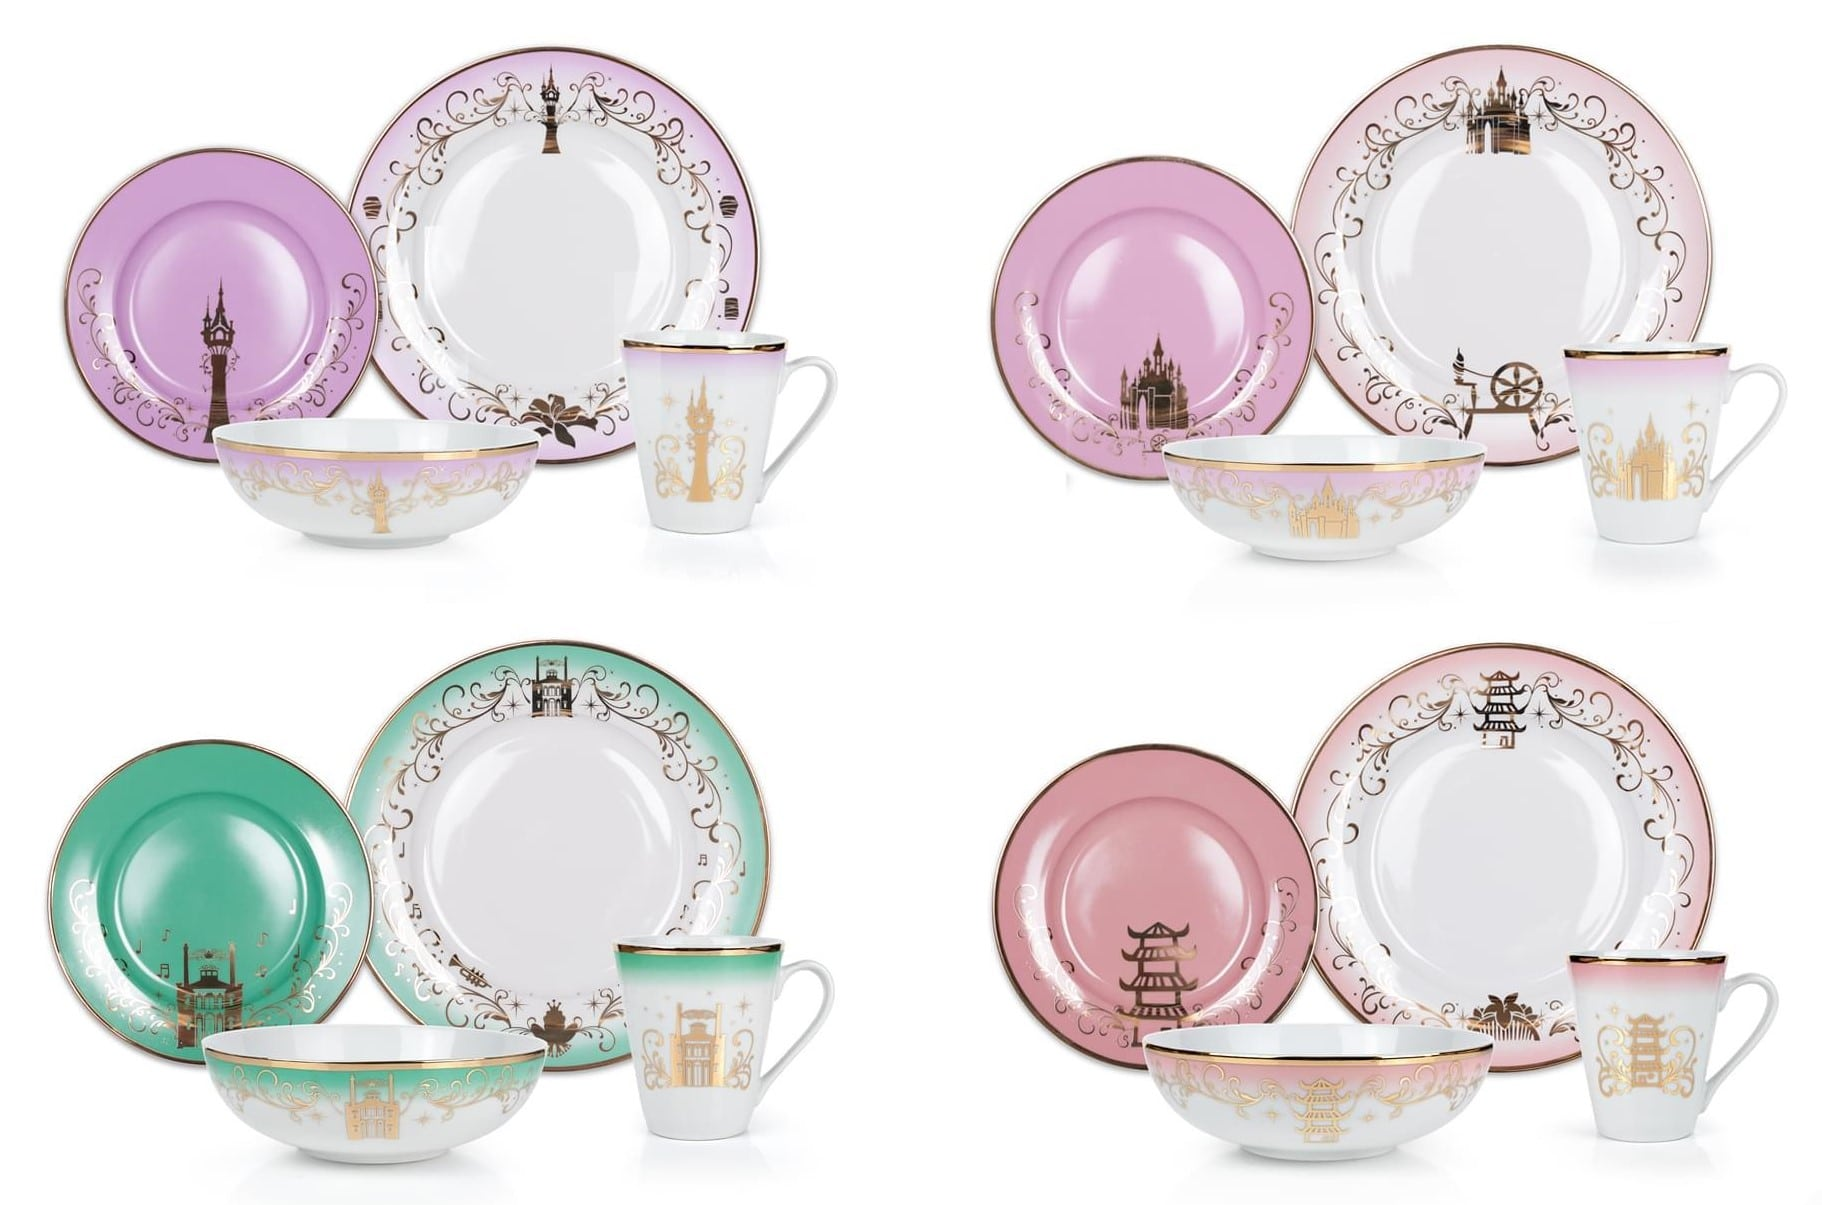 Elegant Disney Princess dinnerware collection features Frozen and Mulan 17